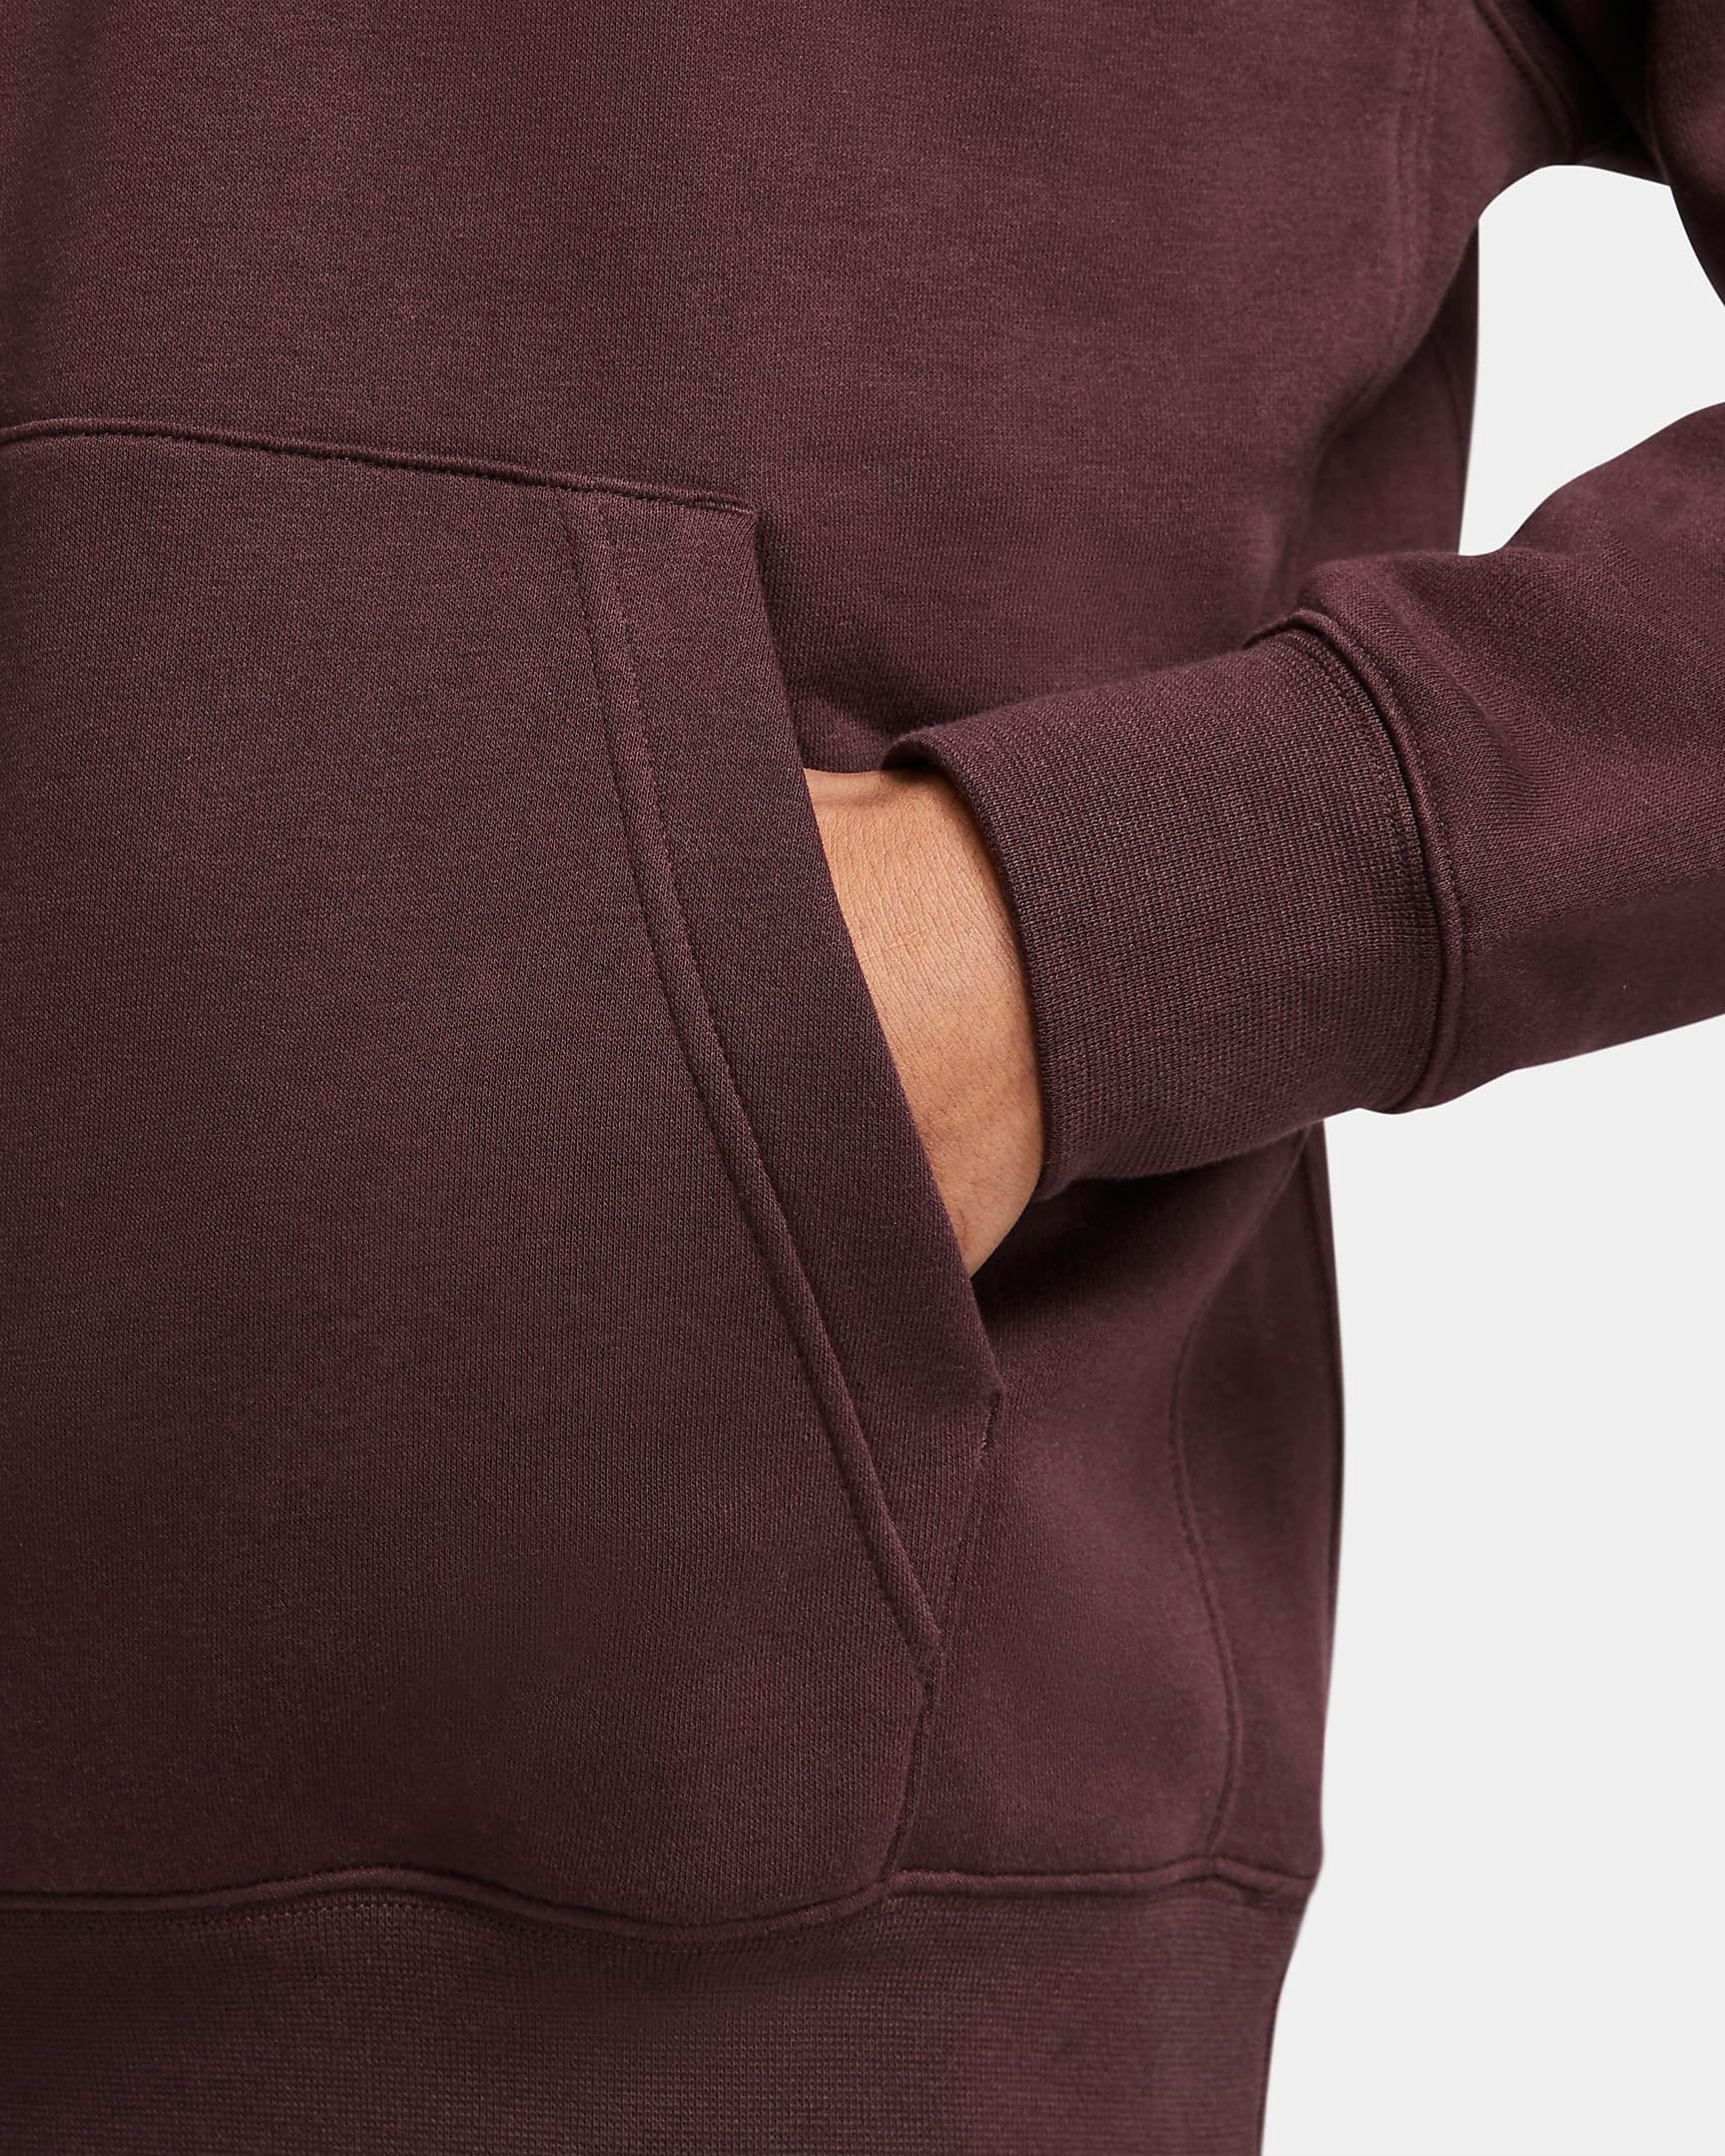 nike-club-fleece-hoodie-mahogany-brown-2